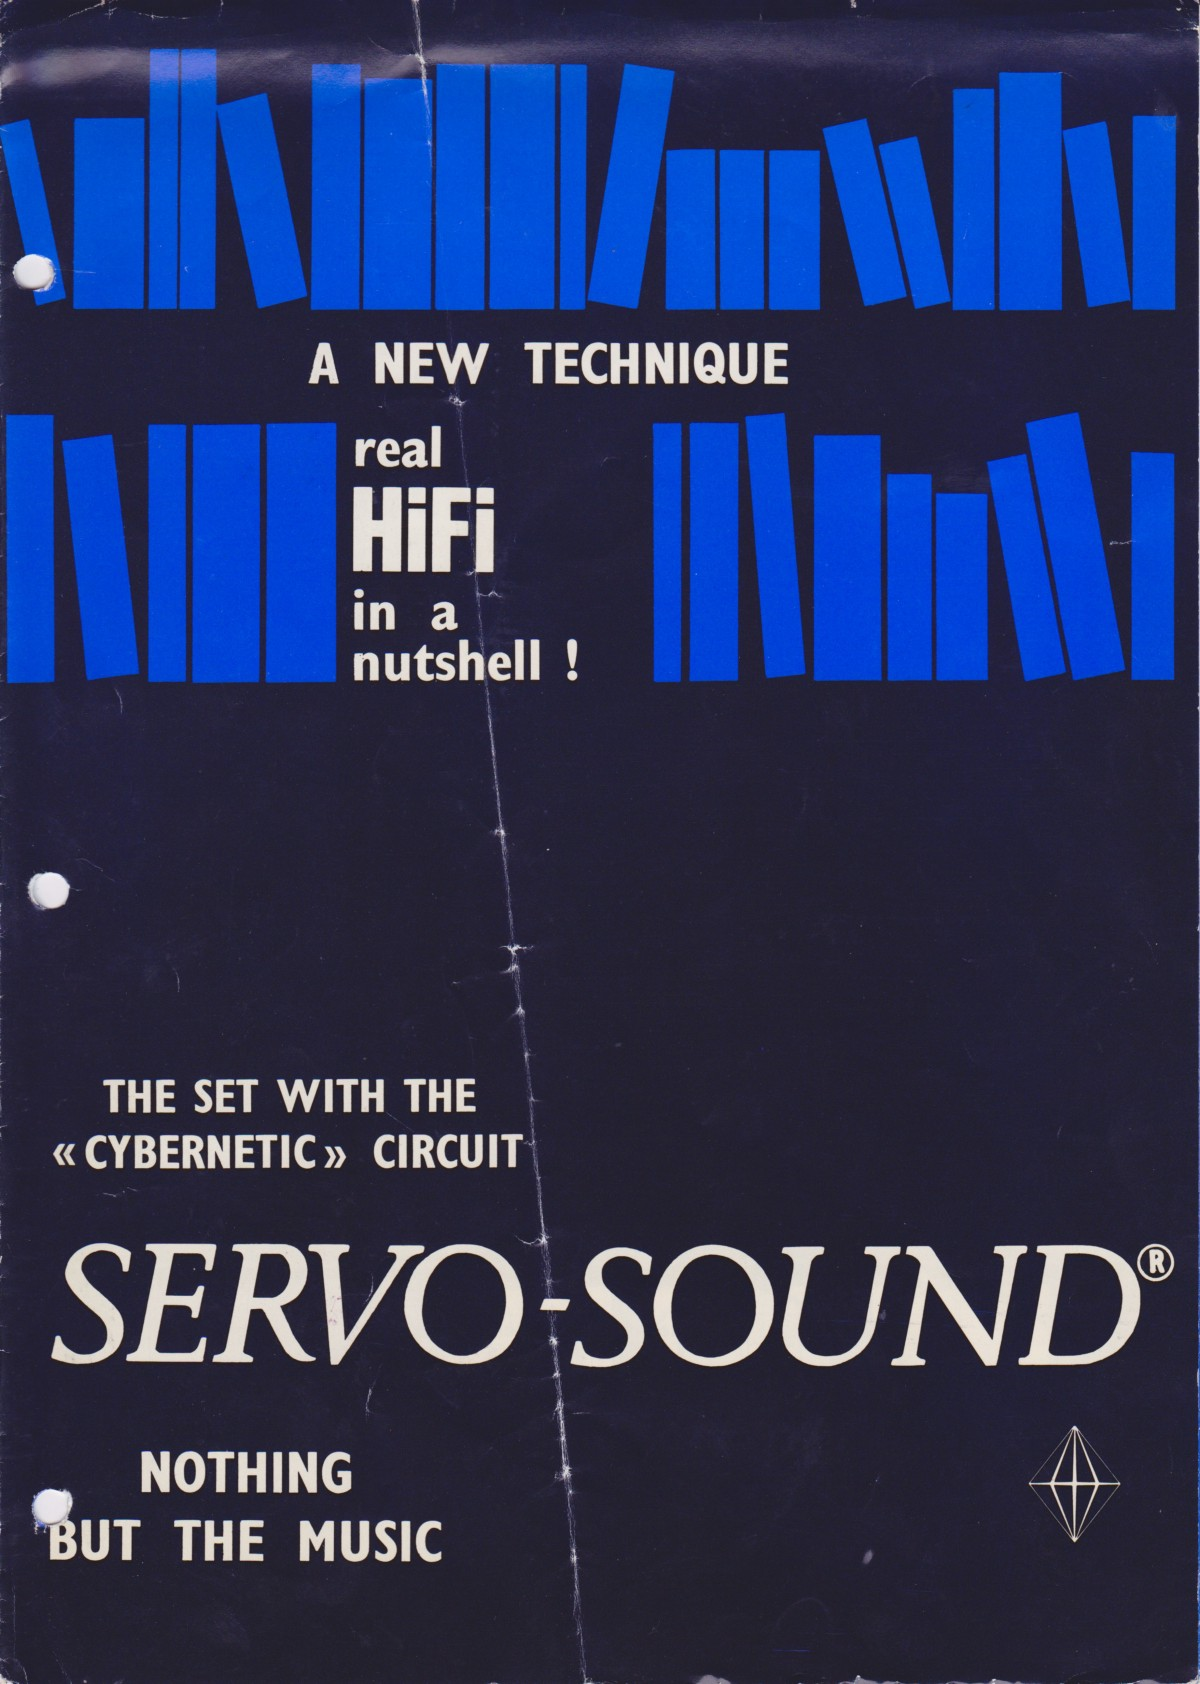 Cybernetic Hi Fi And Quadramania My Trip To Ces In 1972 Electrical Control Wiring Book Trying Sell People On A New Standard Then Tell Customers You Have Une Technique Davant Grade Servo Sound Circuit